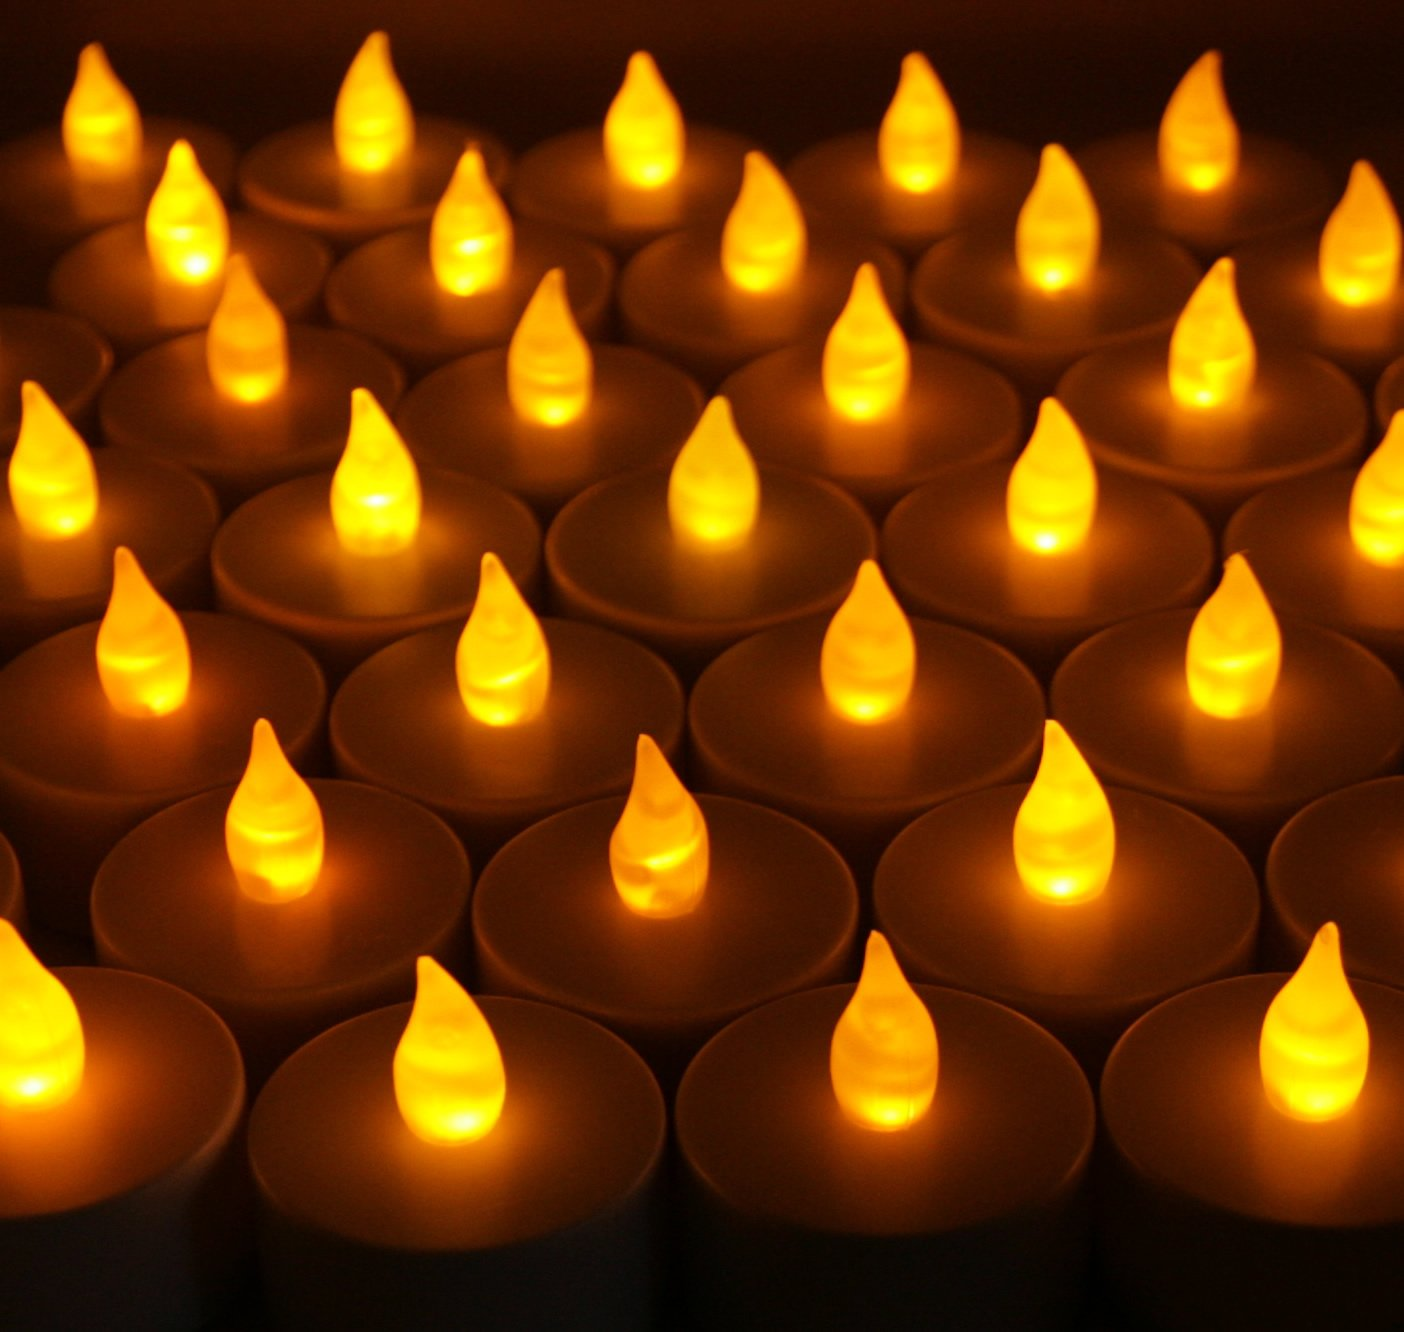 Bluedot Trading Flameless Battery Operated LED Tea Lights, Amber Color Flame, 100-Pack by Bluedot Trading